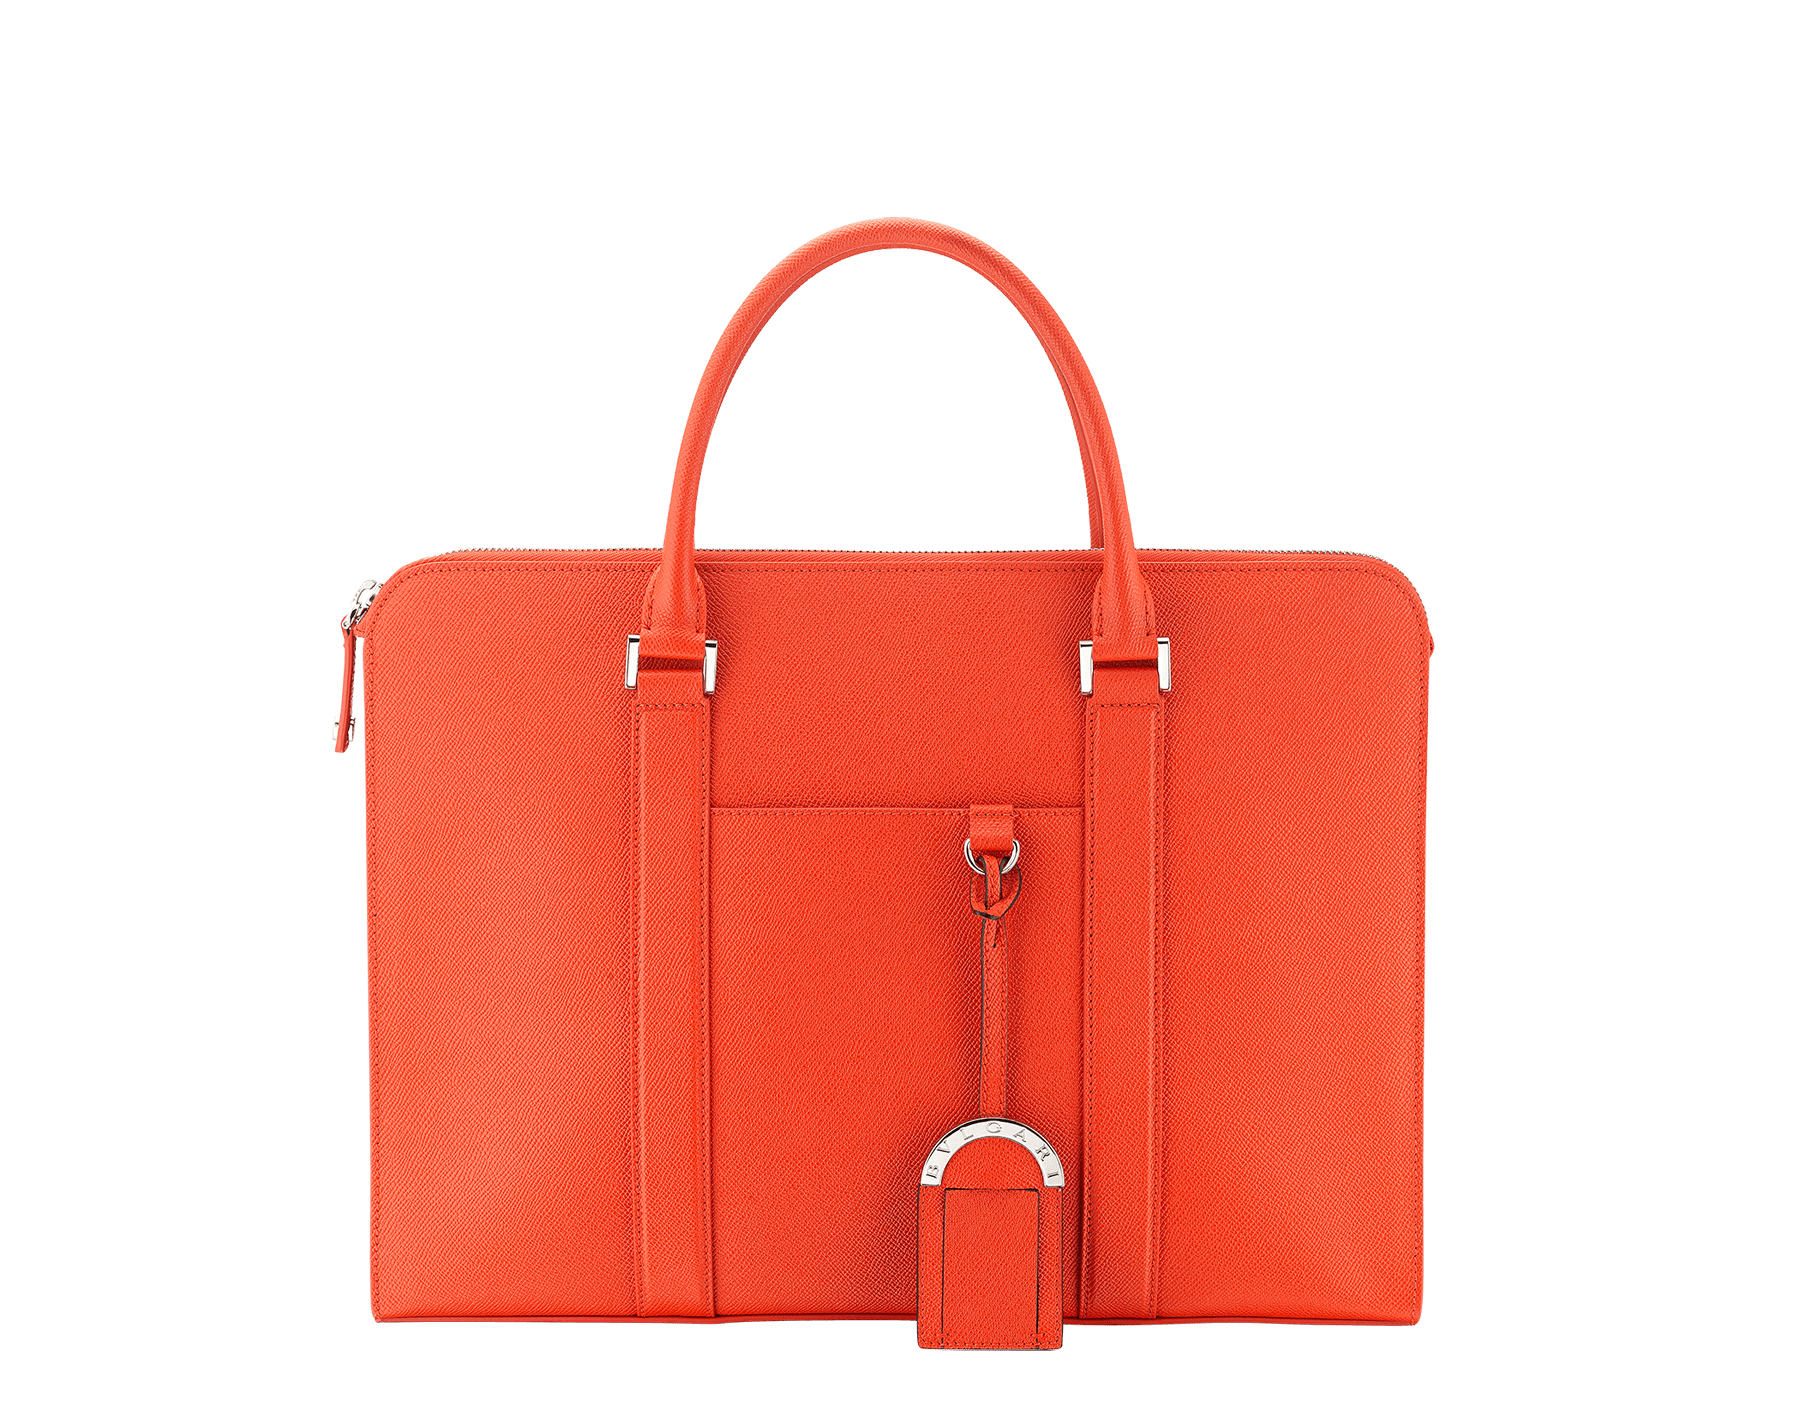 BVLGARI BVLGARI zipped briefcase in fire amber grain calf leather and black nappa lining, with brass palladium plated hardware. 289322 image 1